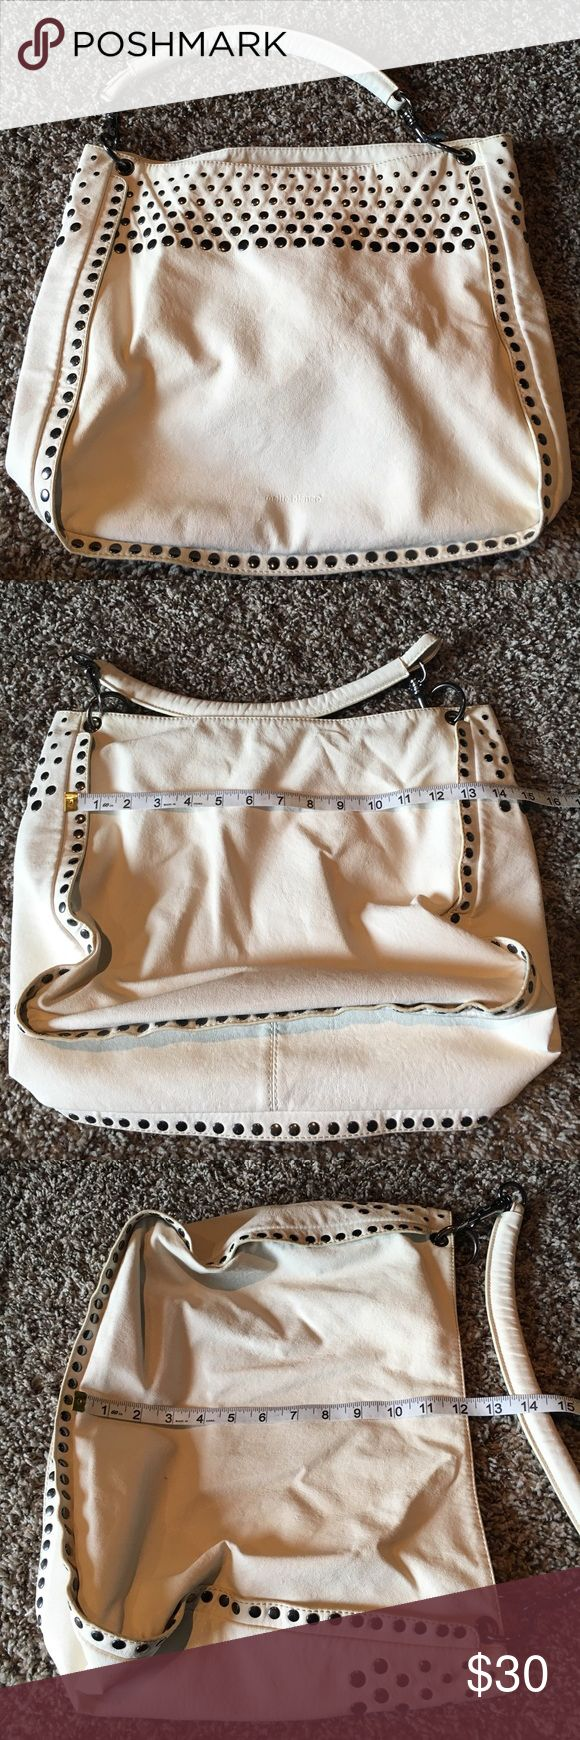 White studded Melie Bianco purse 13.5x12x4 Great condition! Only flaw is last picture: one very tiny unnoticeable hole/tear on back side. smoke free. 🛍Open to reasonable offers ONLY please! I will not consider unreasonable offers that are half the asking price. No trades. No Modeling. And please keep in mind Poshmark sets the $6.49 flat rate shipping. Thank you!☺ Melie Bianco Bags Shoulder Bags